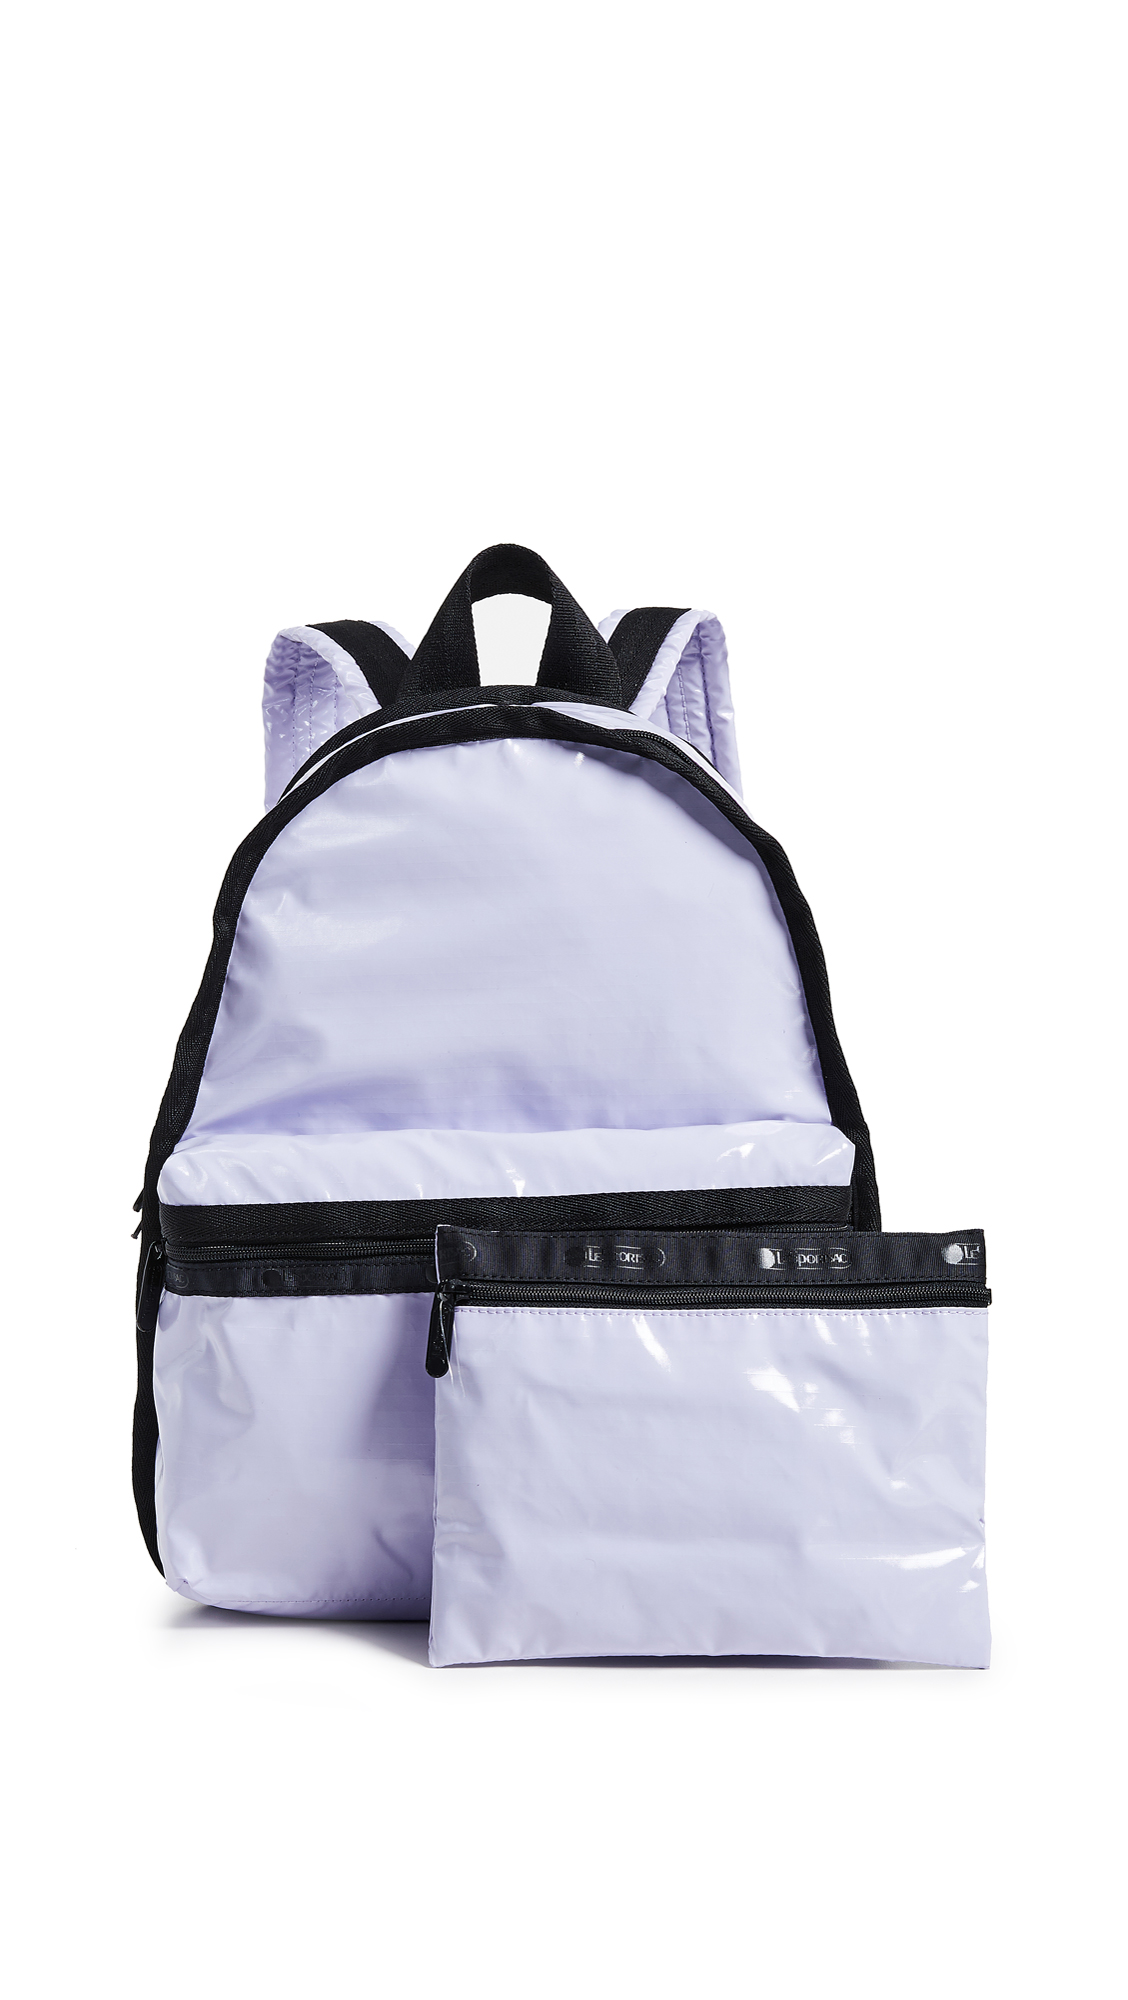 LESPORTSAC Candace Backpack in Lilac